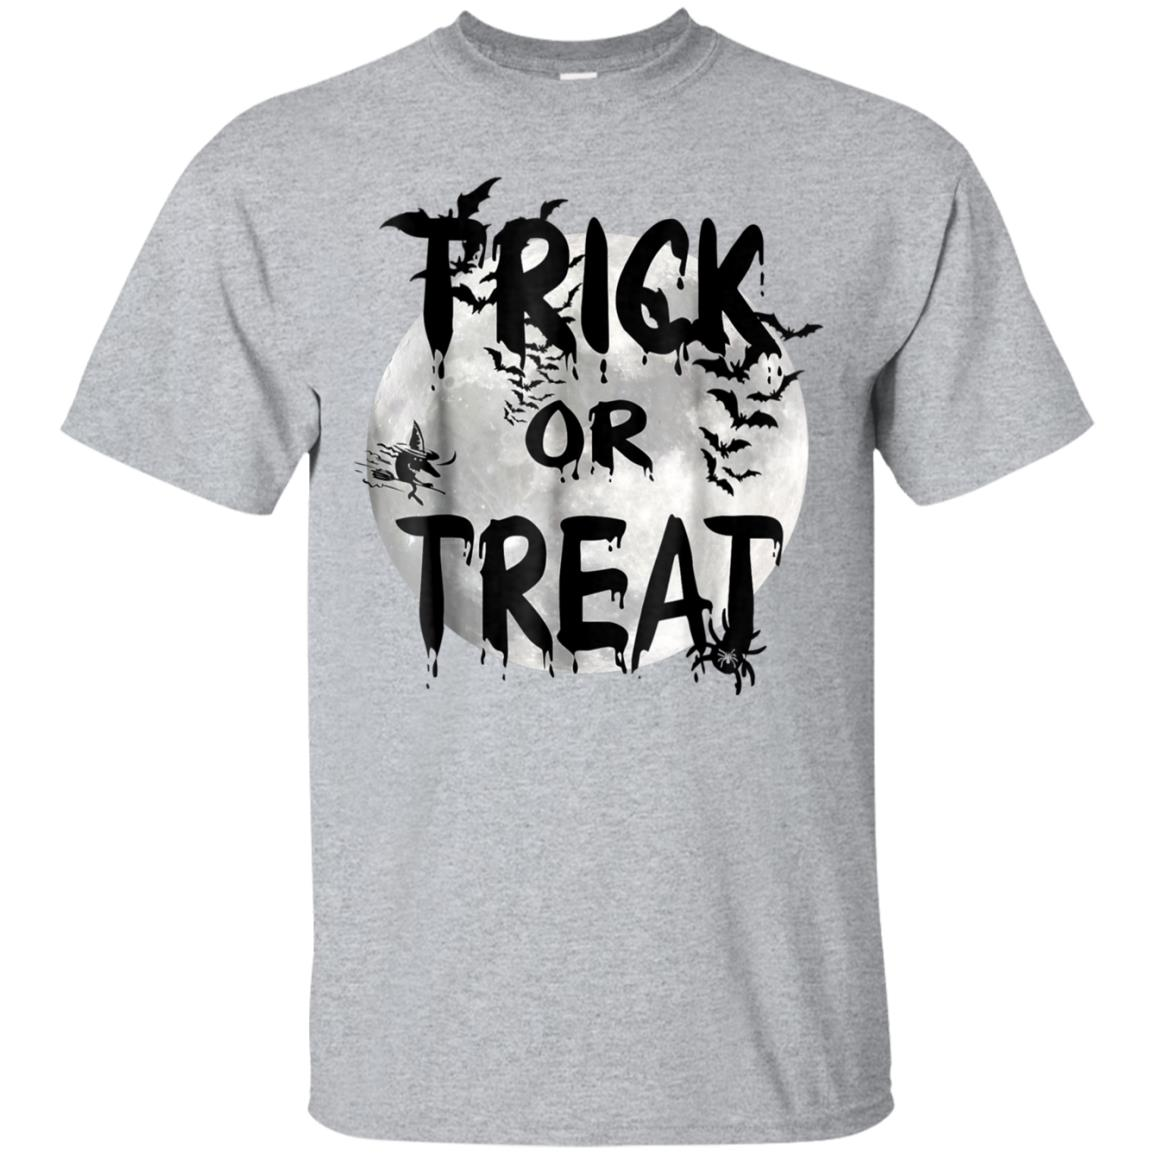 Trick or Treat Funny T-shirt Halloween Gift, Witch 99promocode